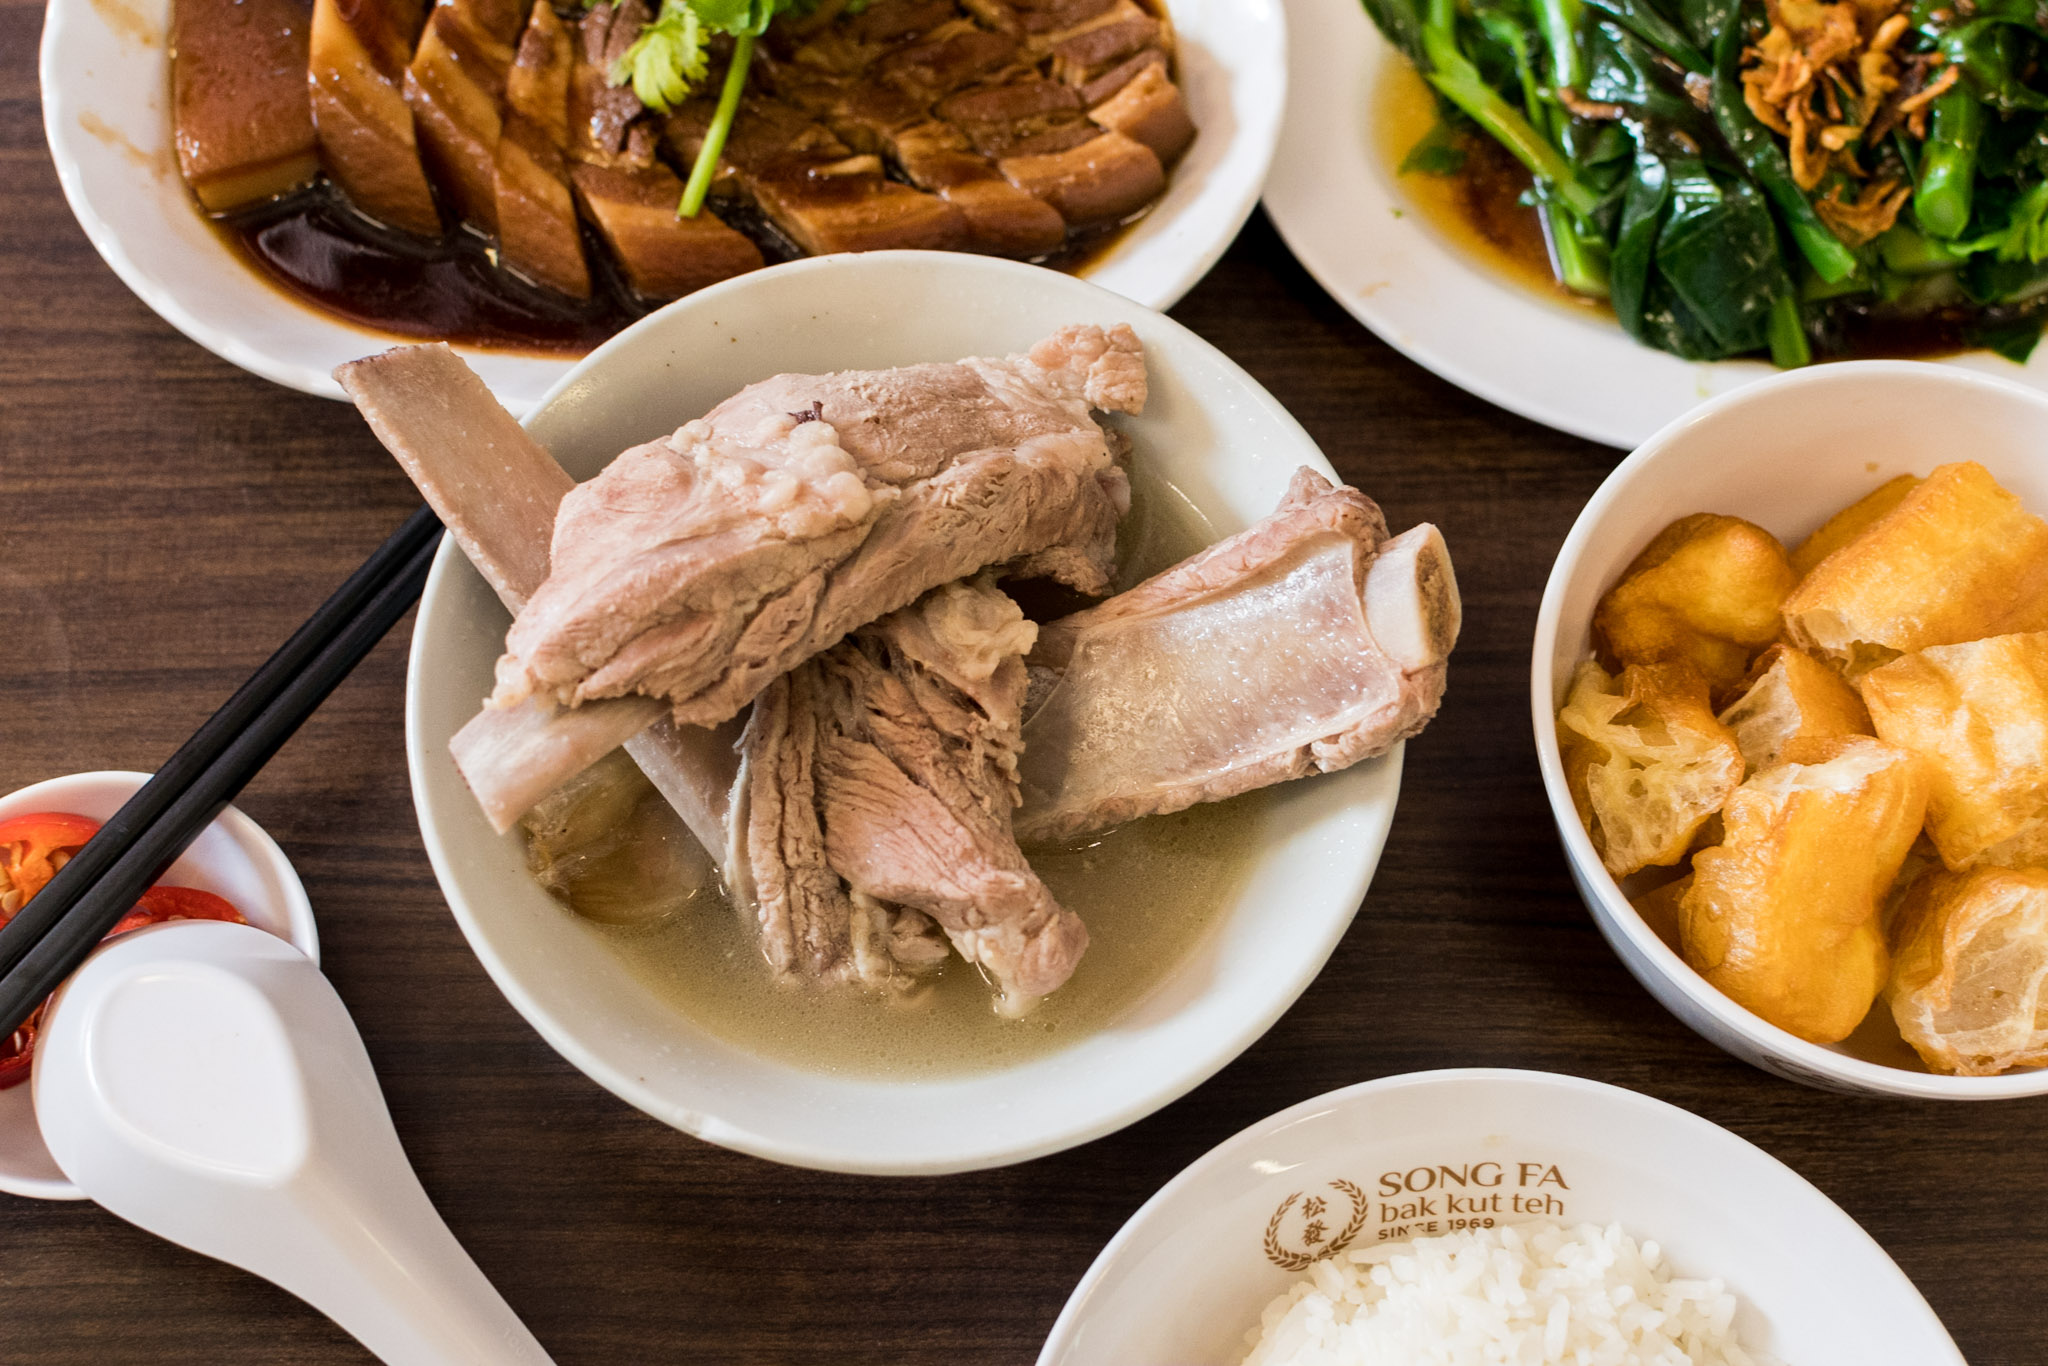 Song Fa Bak Kut Teh - Shot on Nikon D500  Bib Gourmand (Michelin Guide Singapore 2016) ISO 1600 | f / 4 | 1/160 sec